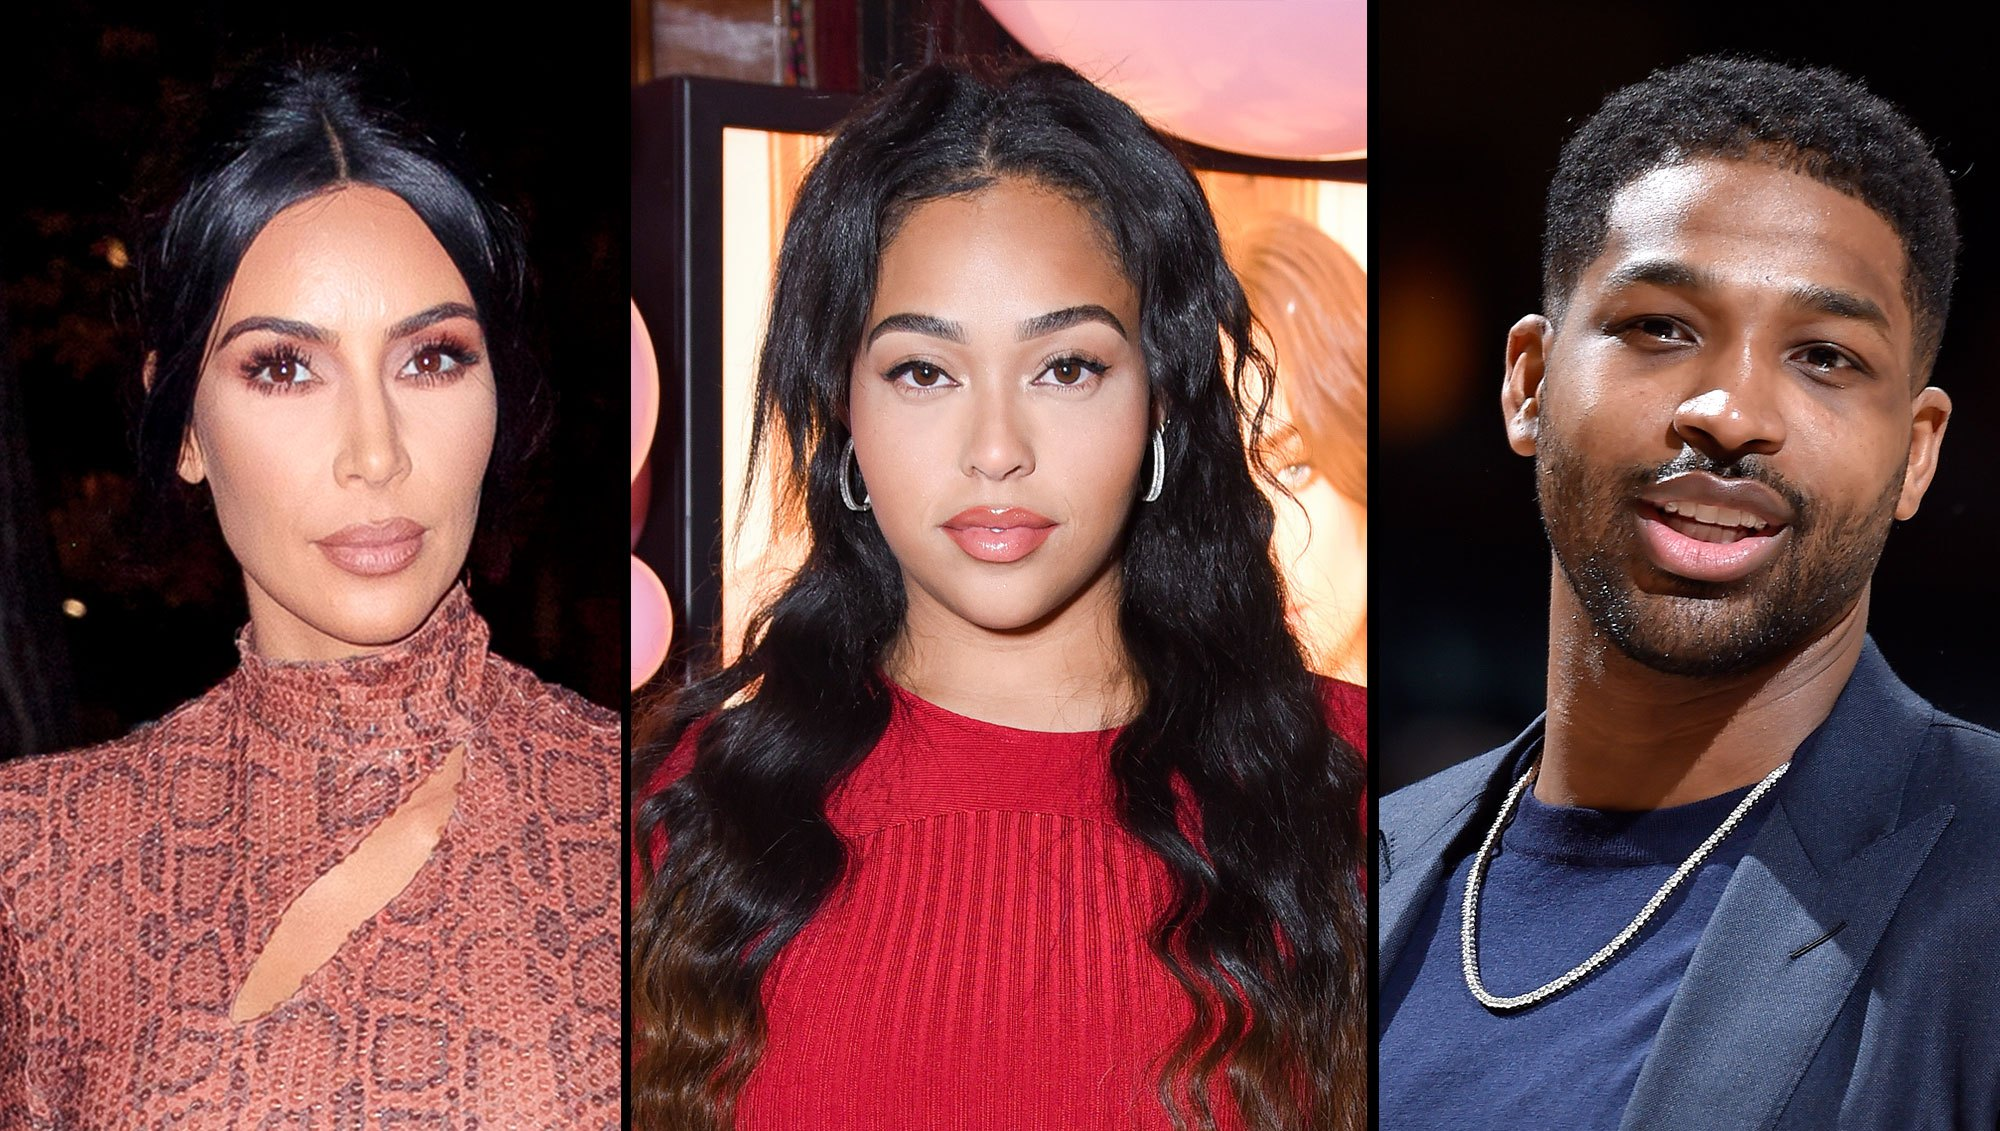 Kim Kardashian Unfollows Jordyn Woods and Tristan Thompson on Instagram After Cheating Scandal